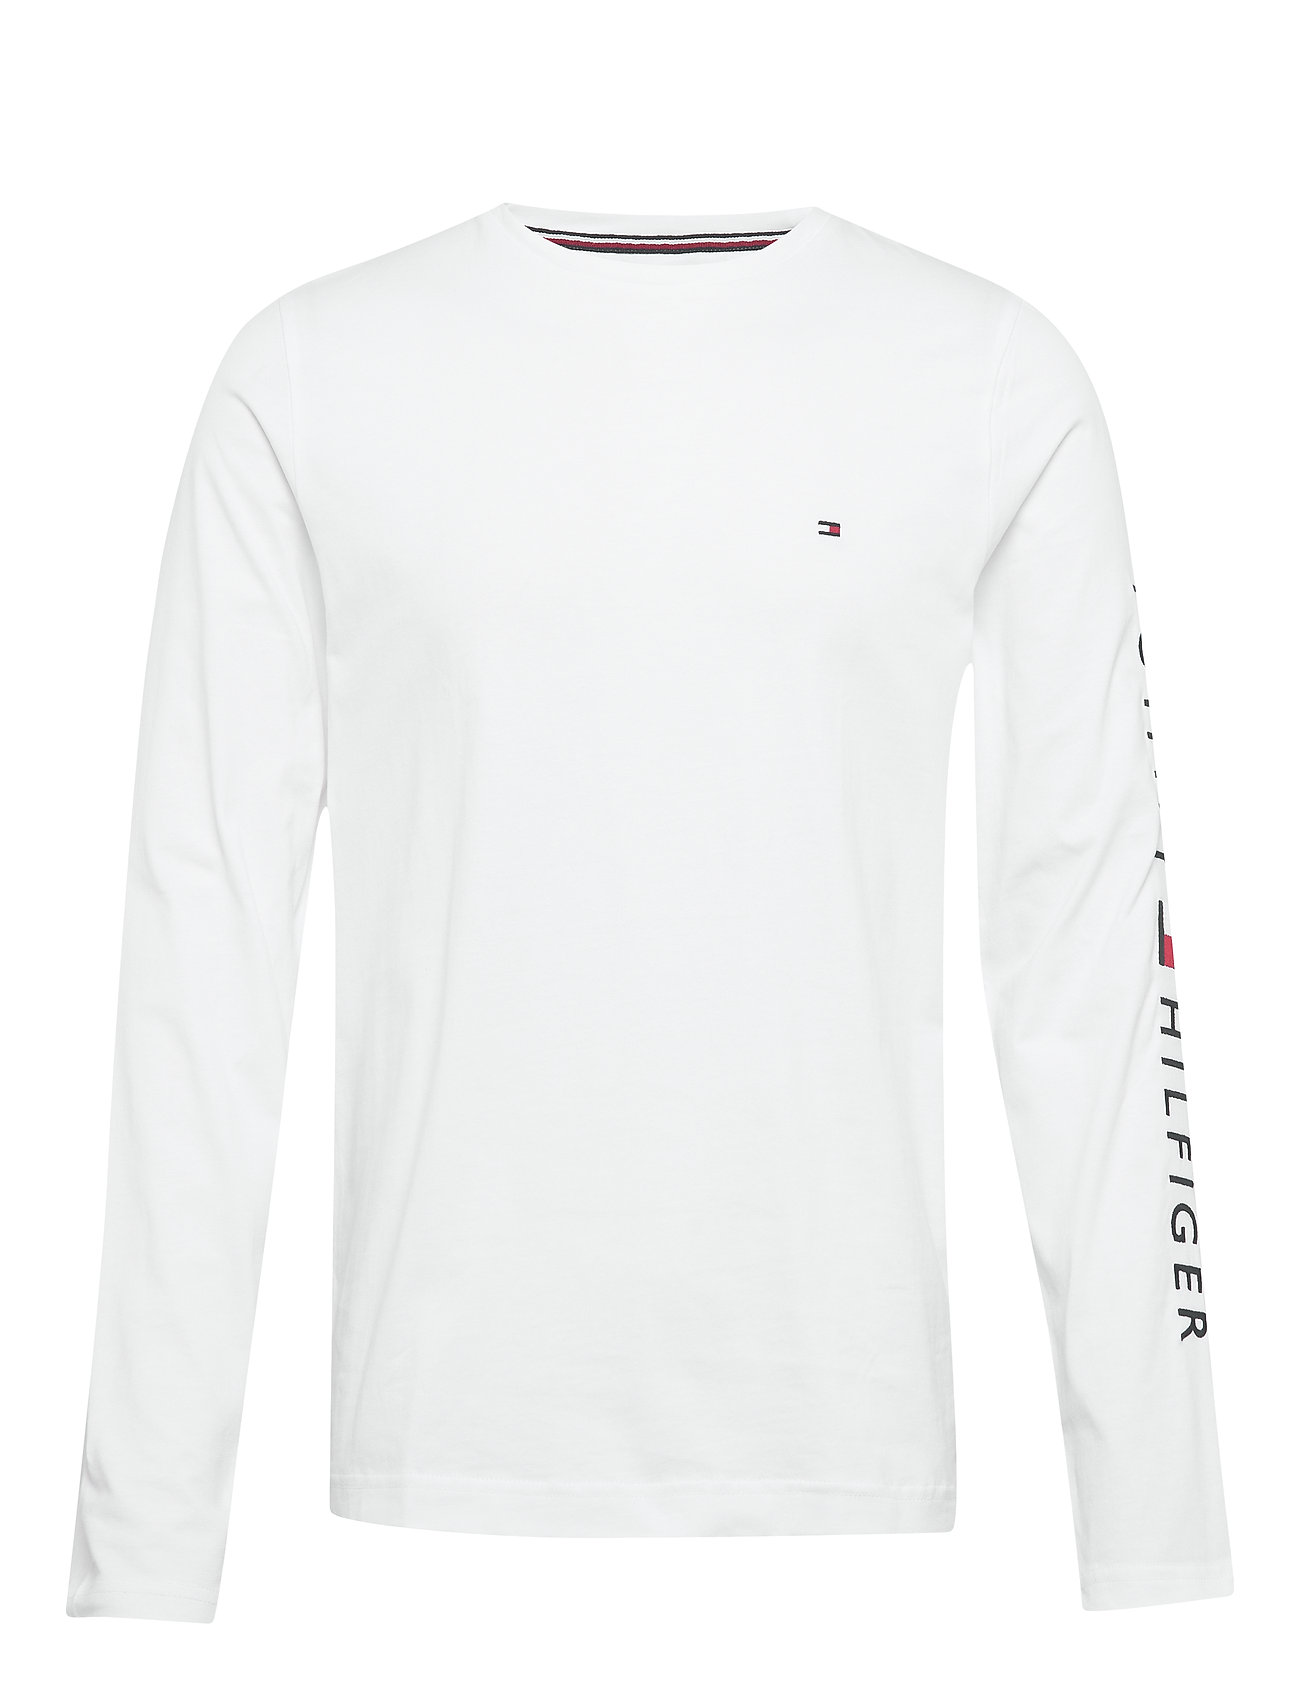 Tommy Hilfiger TOMMY LOGO LONG SLEEVE TEE - WHITE